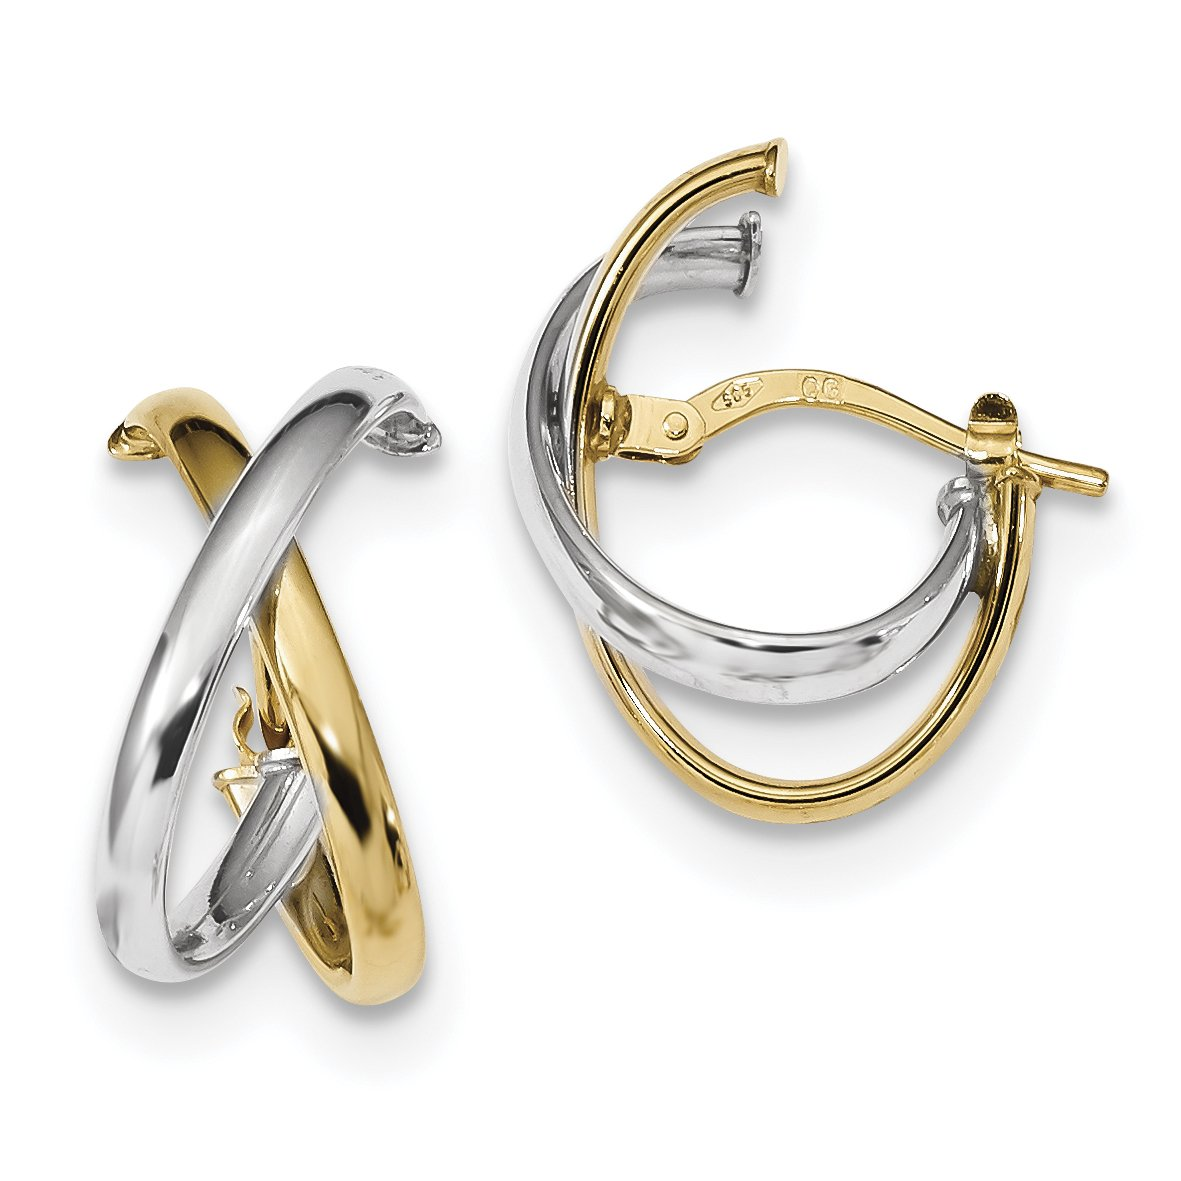 ICE CARATS 14k Two Tone Yellow Gold Hoops Hoop Fine Jewelry Gift Set For Women Heart